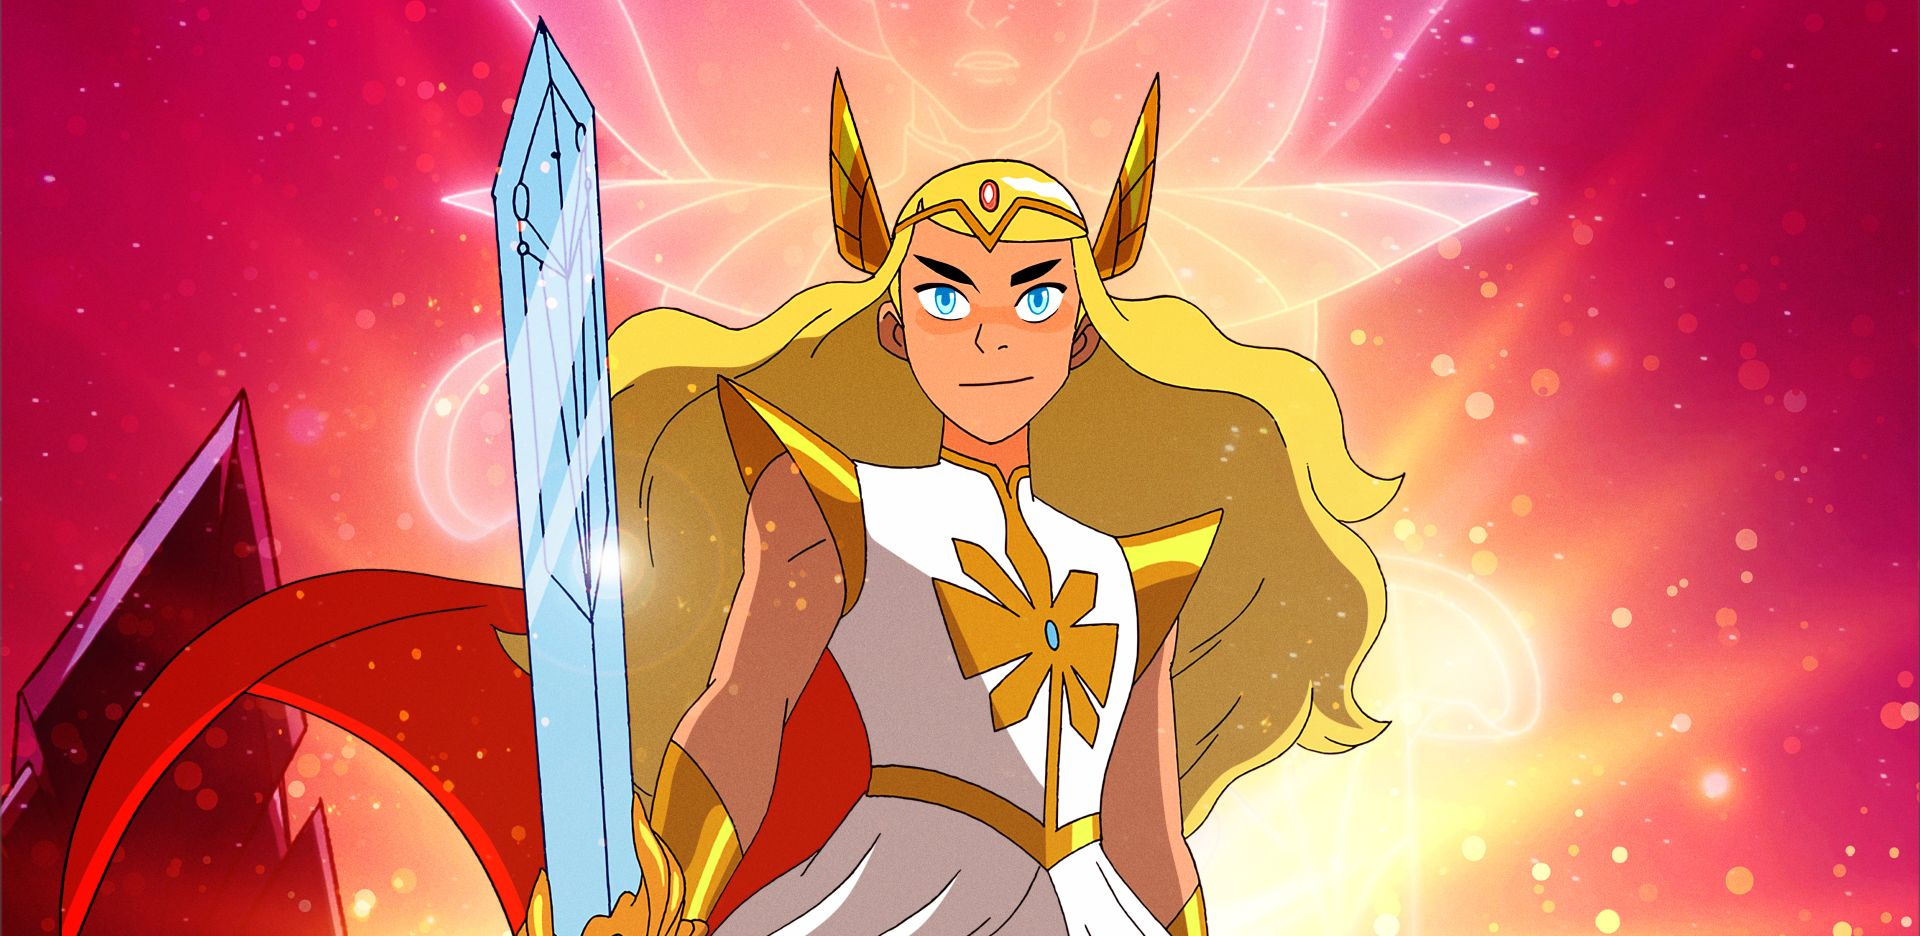 SDCC 2019 She-Ra and The Princesses of Power She-ra Vs Shadow Weaver 2-Pack